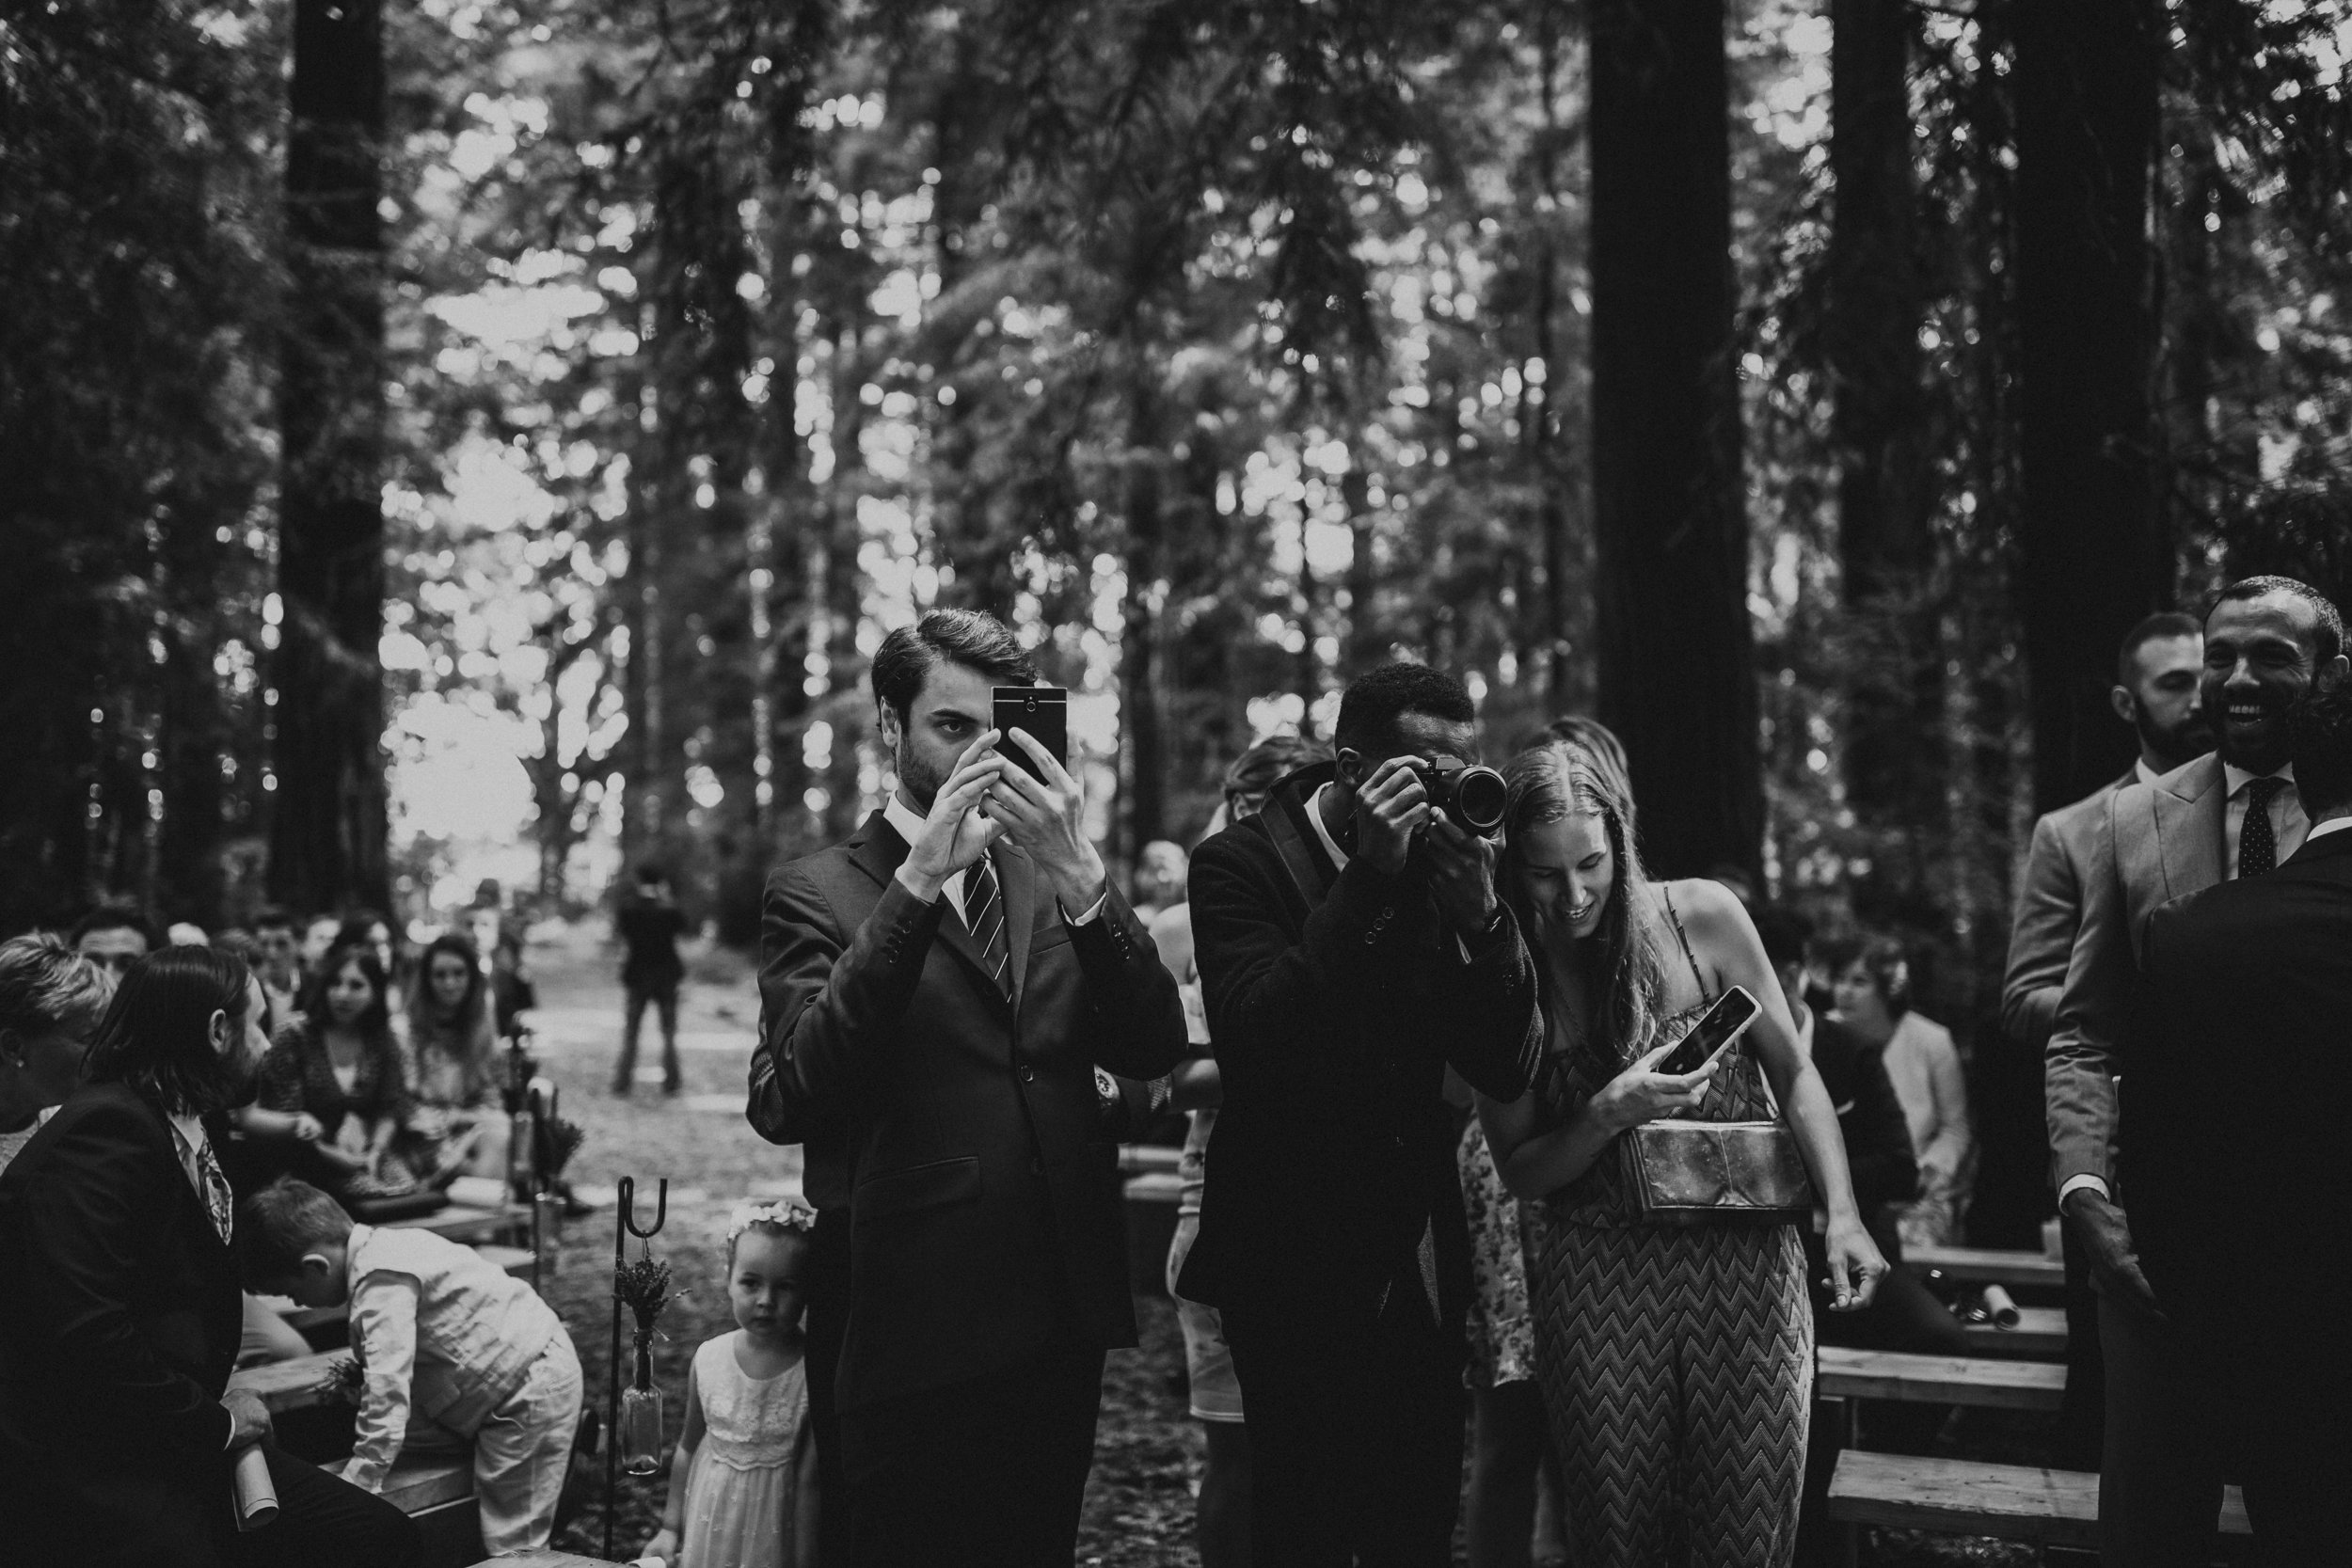 TWO_WOODS_ESTATE_WEDDING_PULBOROUGH_PJ_PHILLIPS_PHOTOGRAPHY_FRAN_&_GEORGE_104.jpg